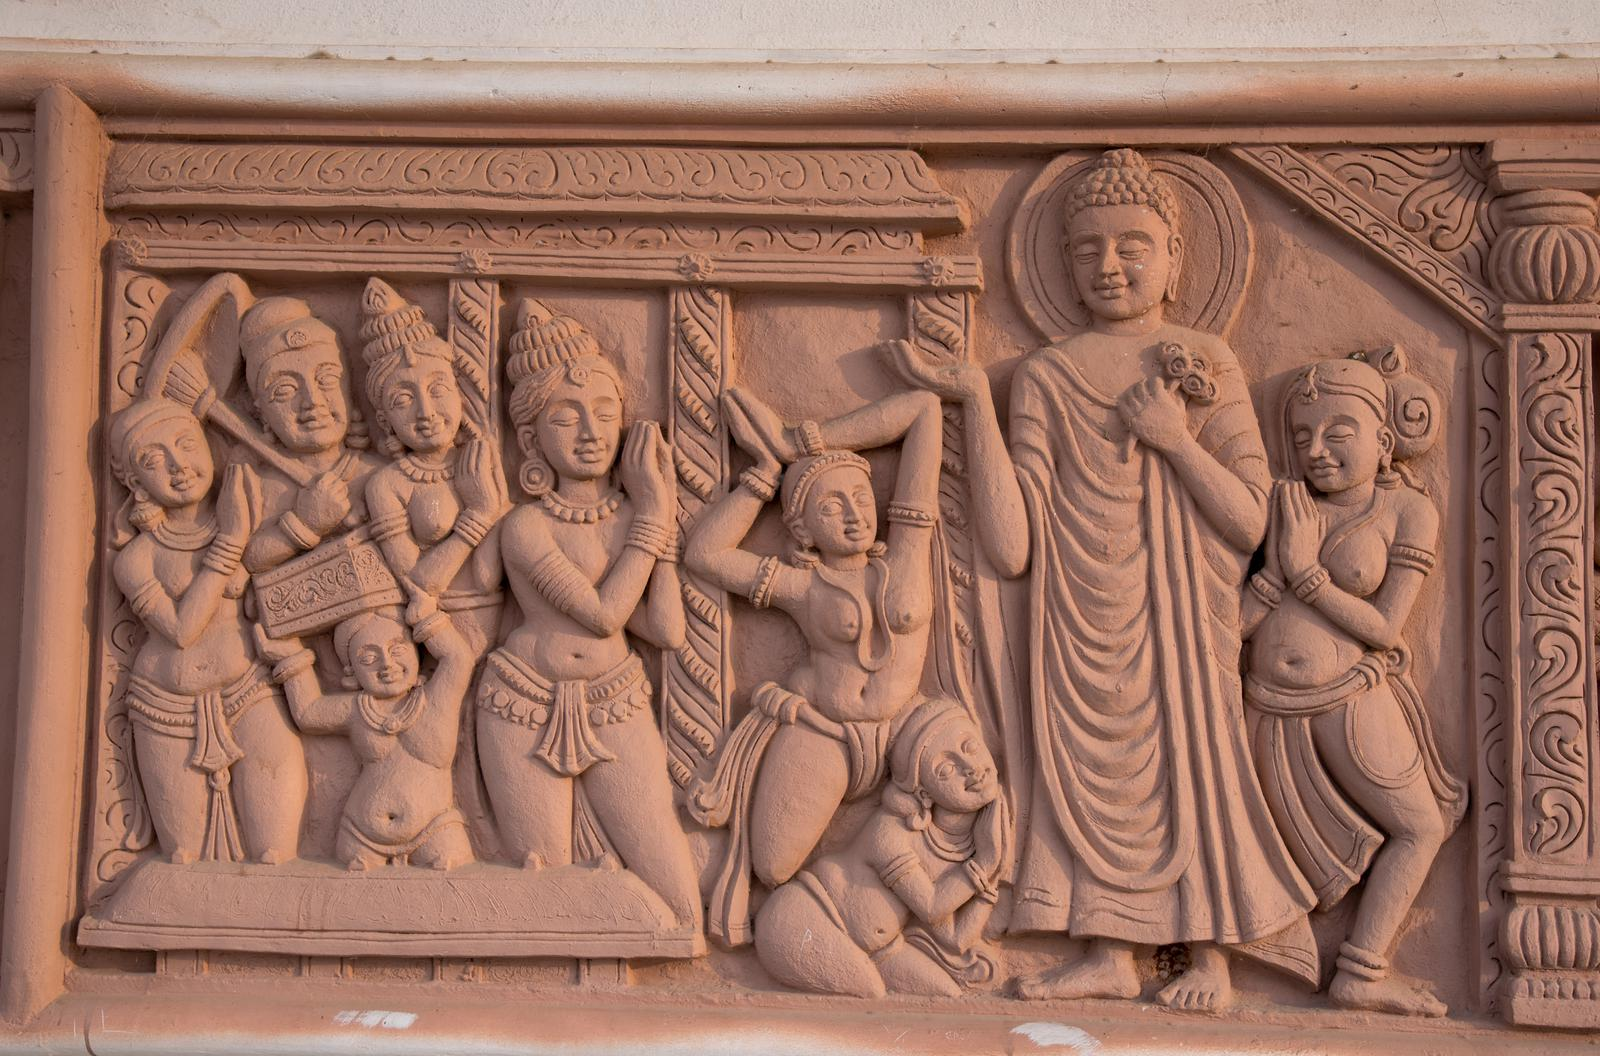 The Unity of Indic Religions (I): There is No Discord, Only Different Ways of Understanding the Supreme Reality